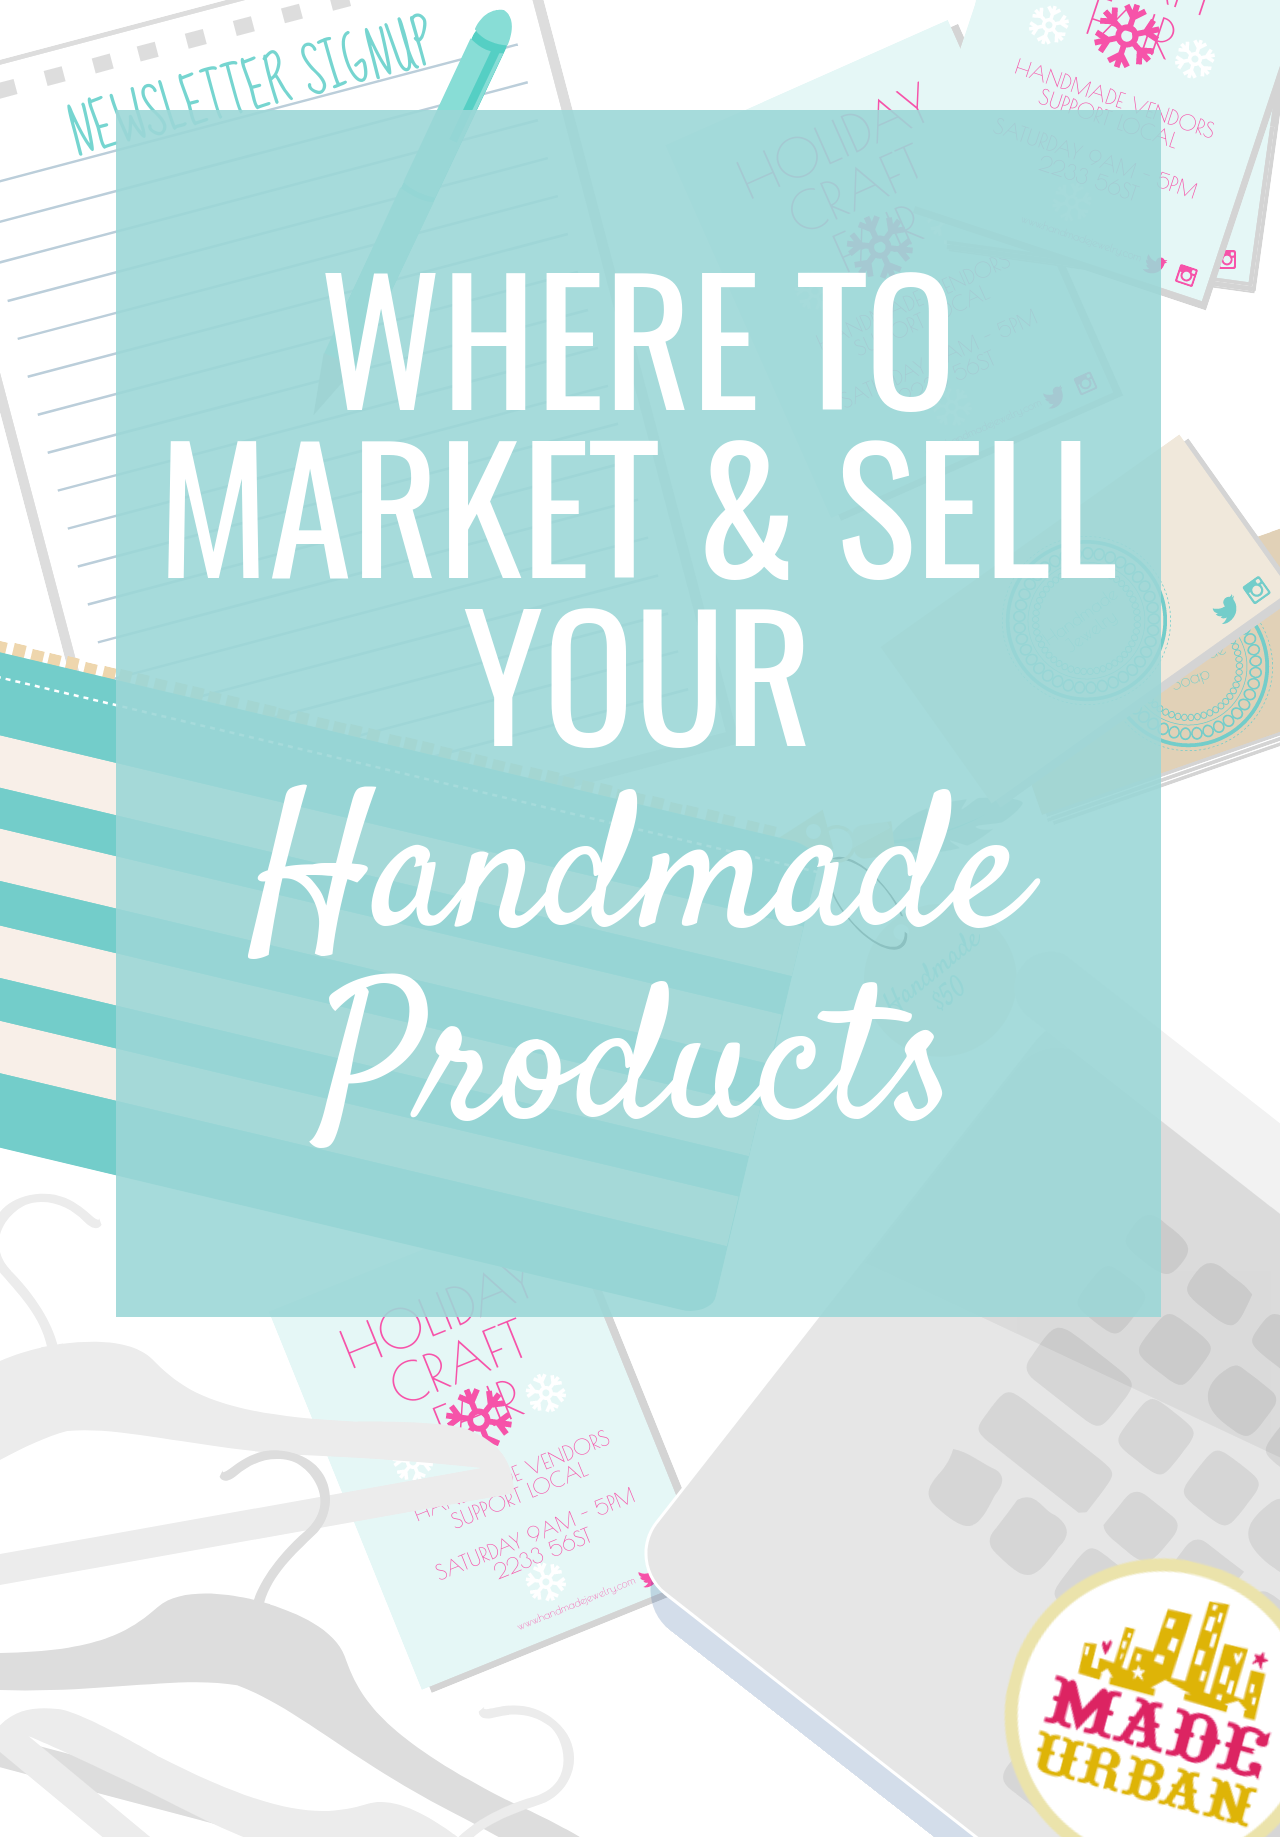 There are many sales and marketing channels for handmade businesses to use, however, they must be chosen wisely based on your products, customer & business.